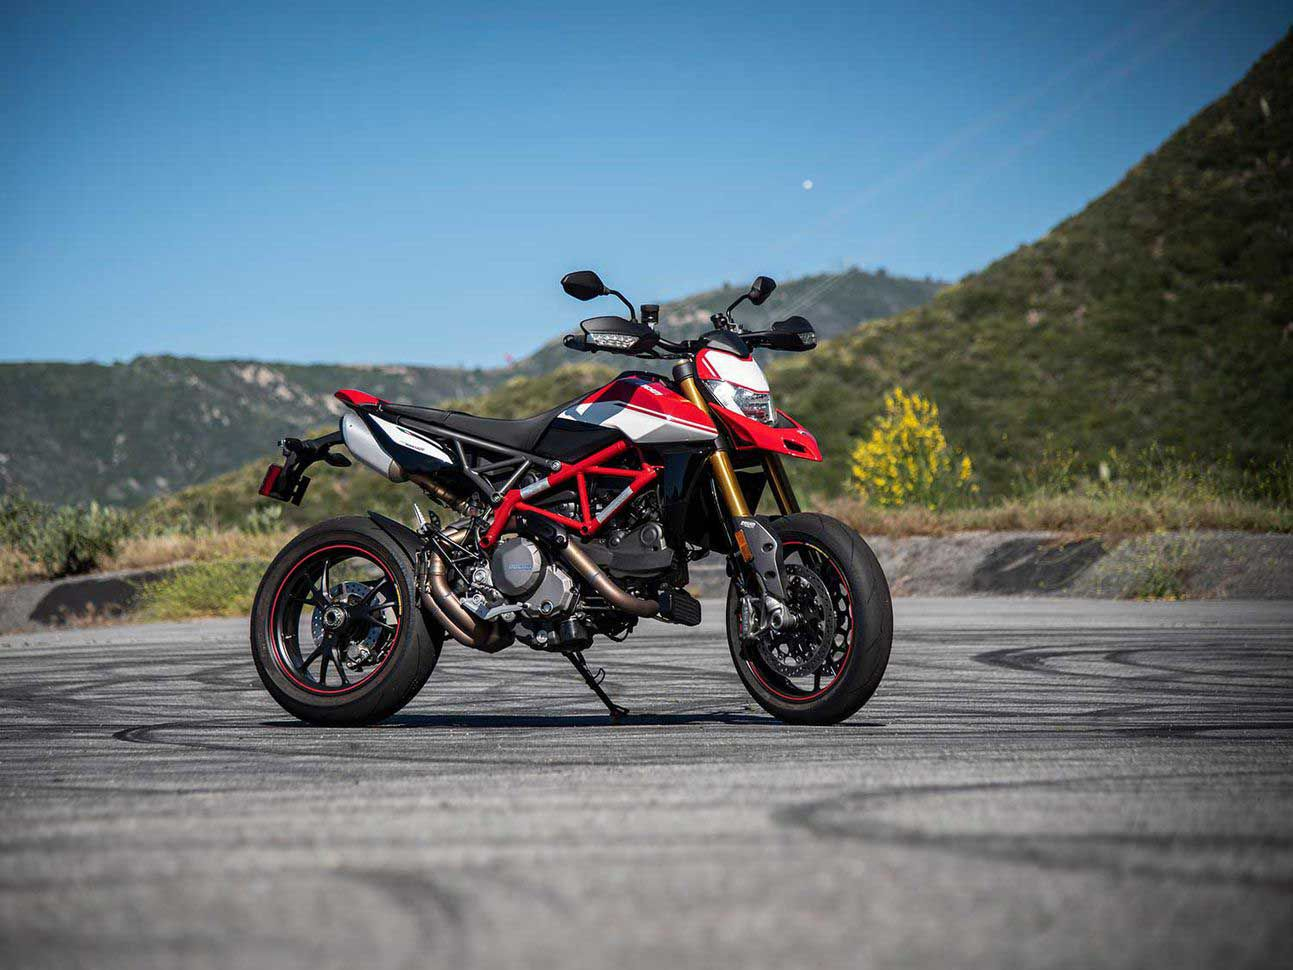 Ducati's Hypermotard 950 SP is on hand for a little bit of fun.